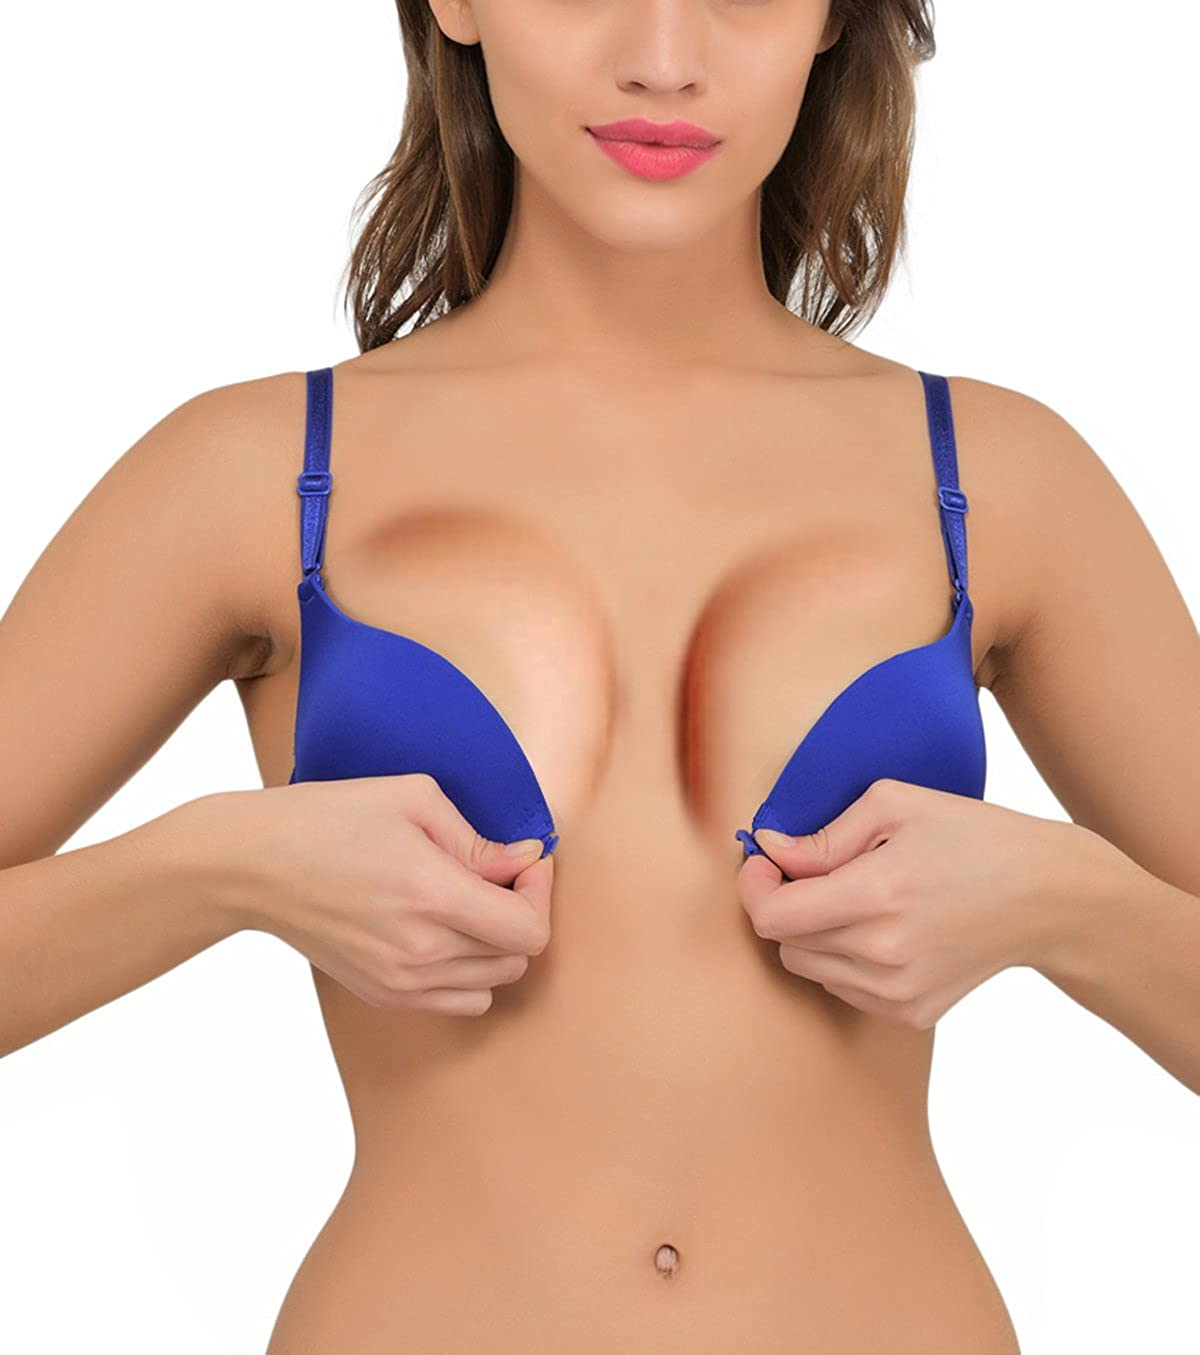 Best-Bra-Brands-In-India-03-9